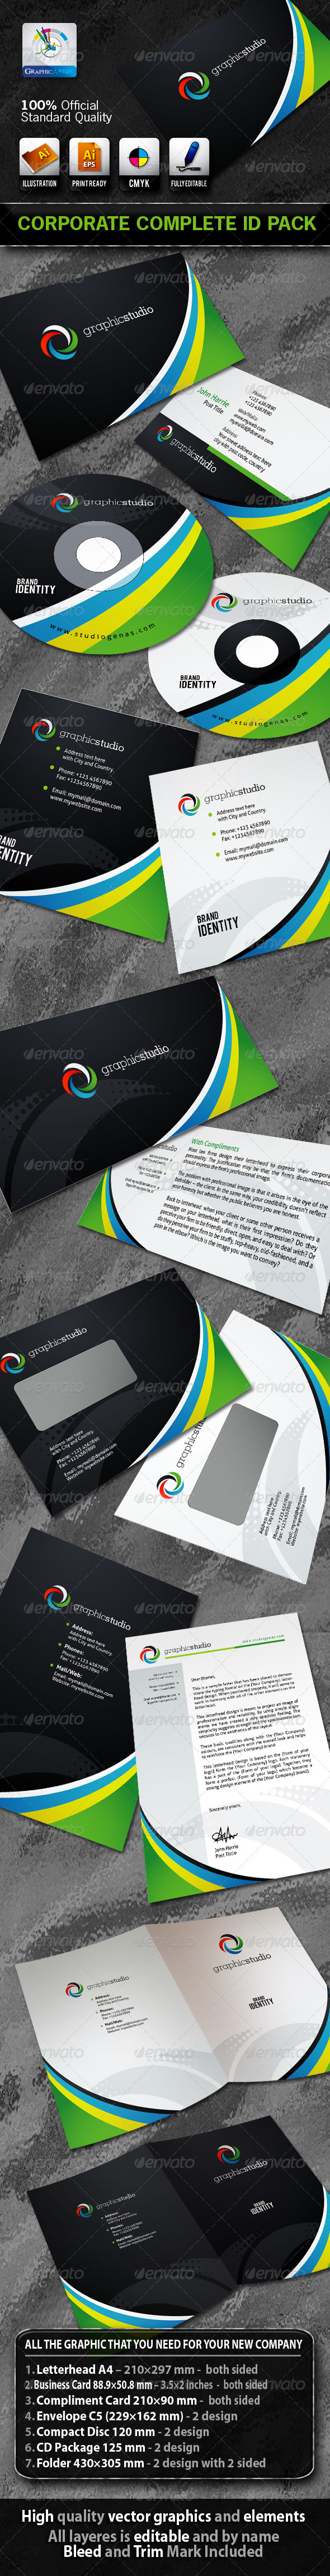 GraphicStudio Business Corporate ID Pack + Logo - Stationery Print Templates